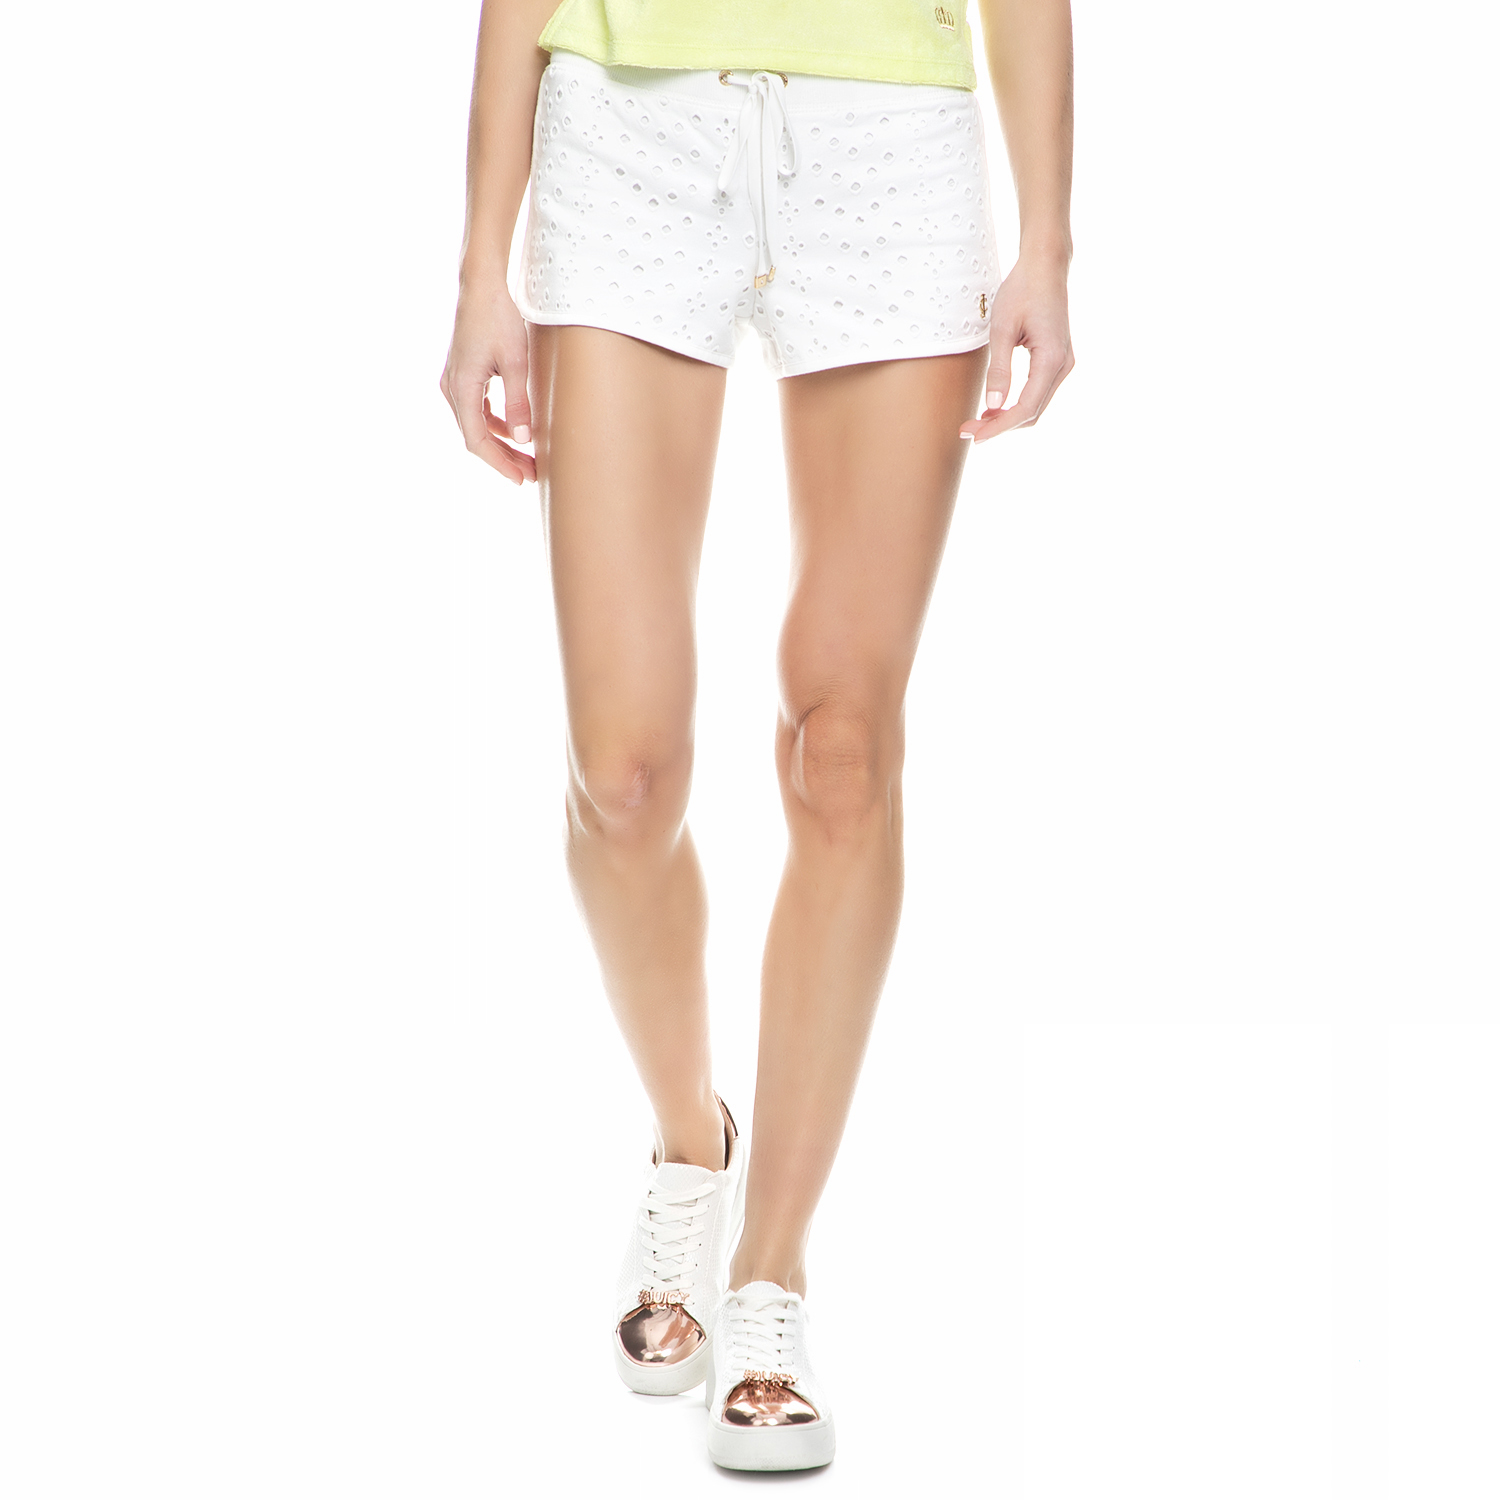 JUICY COUTURE – Γυναικείο σορτς french terry eyelet Juicy Couture λευκό